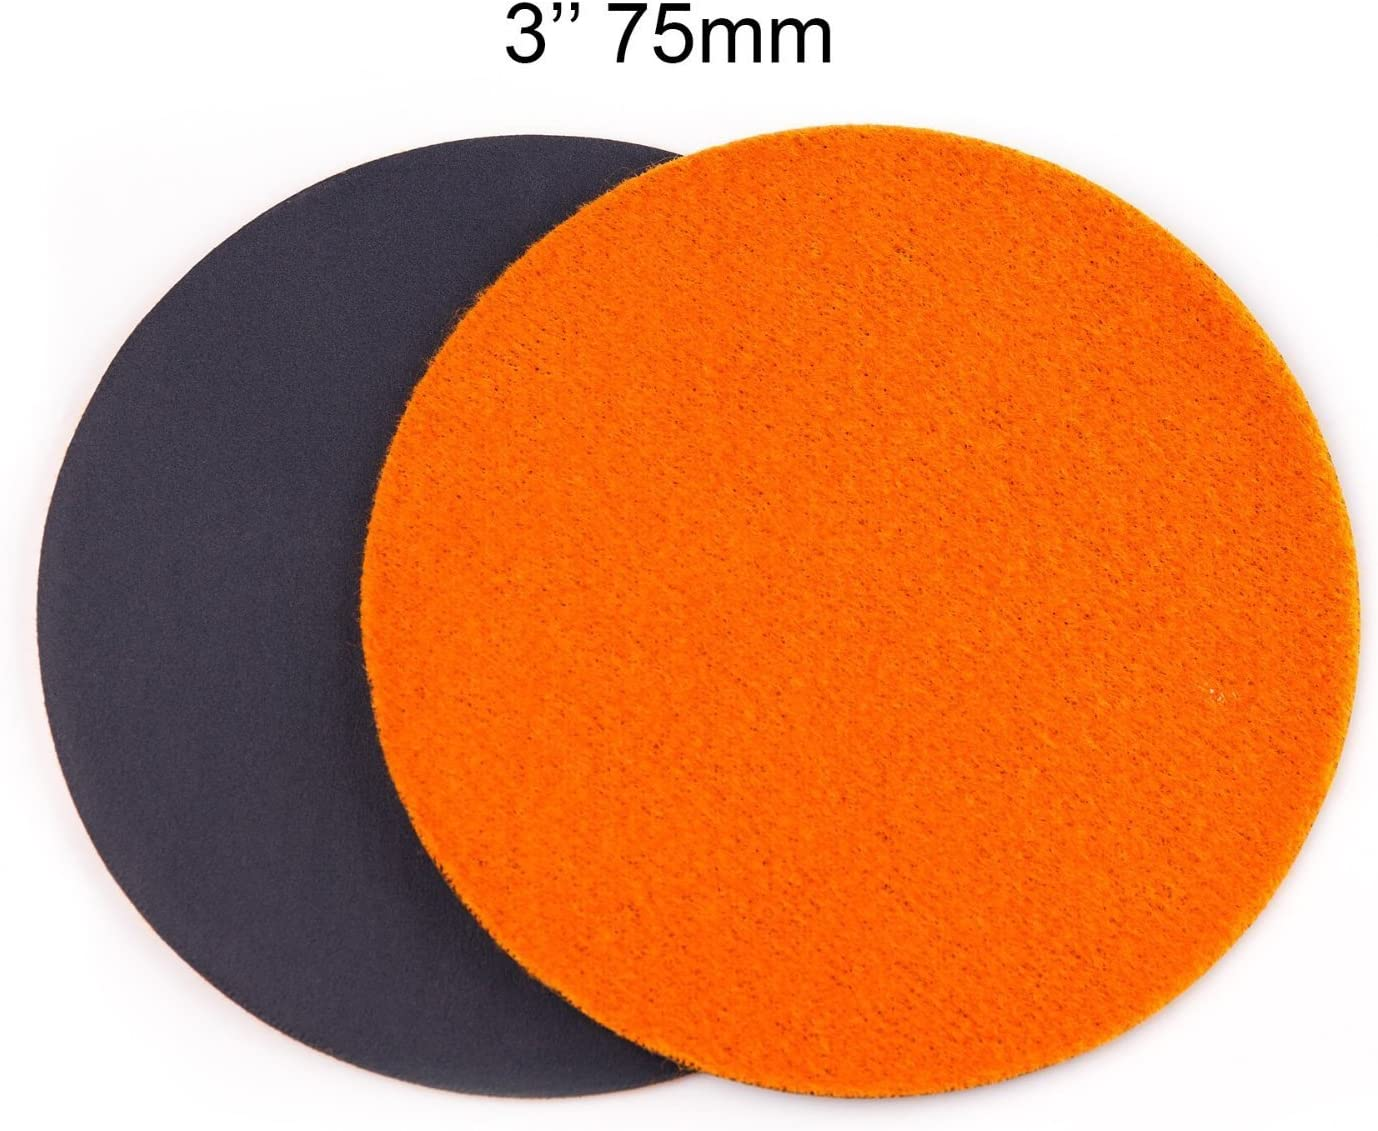 GP13301 GP-PRO20 ULTRA-FINE Grade Sanding Disc for Glass Silicon Carbide Abrasive Disc//Diameter 3 inch//Pack of 50 Discs